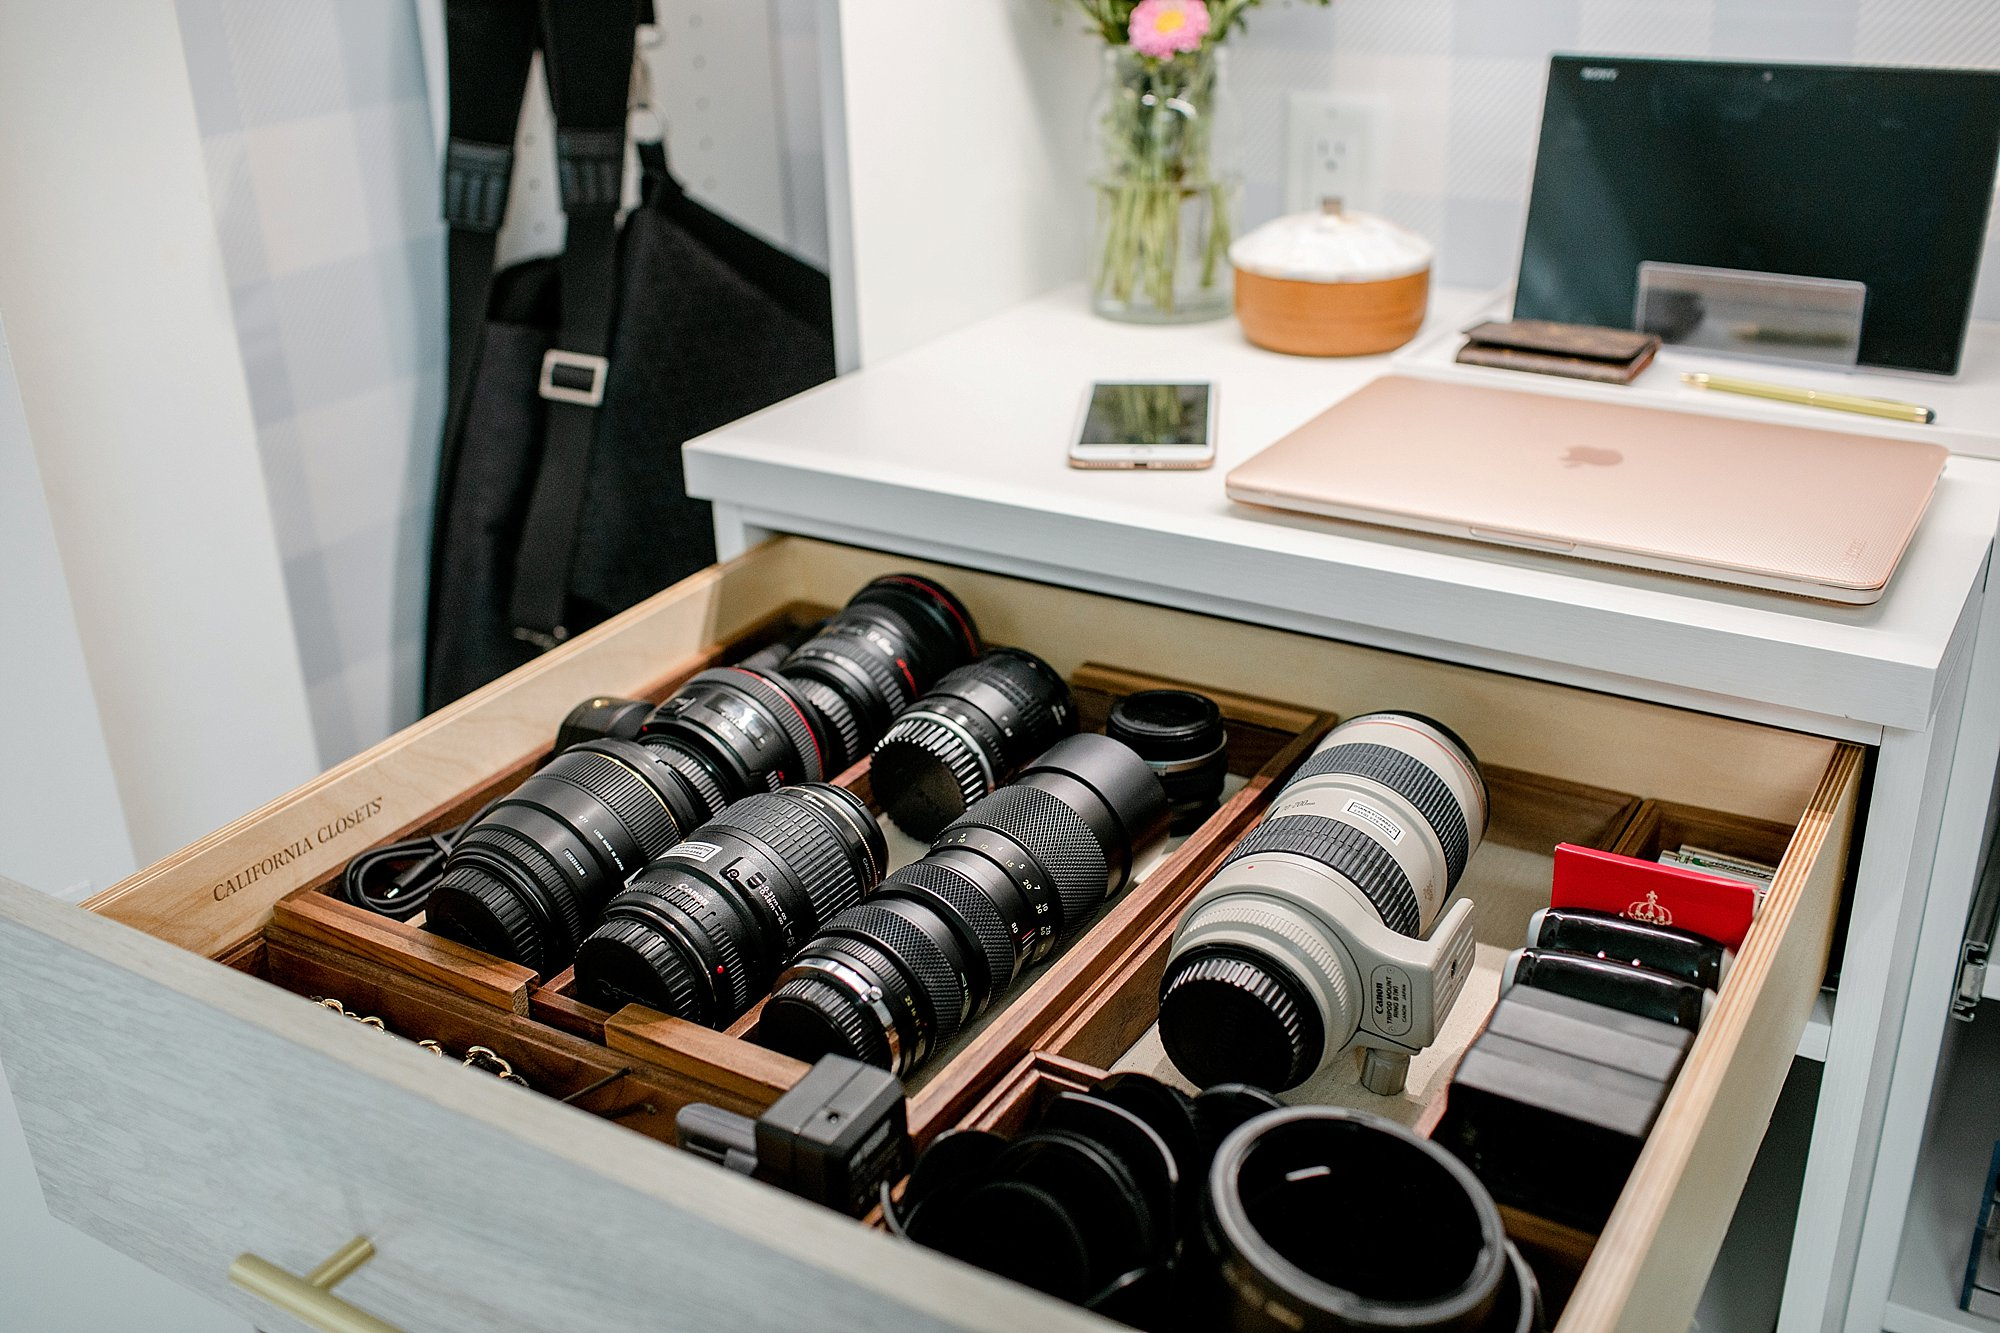 lens organization and camera lens drawer: final reveal of office closet reveal belonging to photographer blogger Diana Elizabeth in phoenix arizona. created by California closets and with removable buffalo check wallpaper #office #closet #wallpaper #organization #lensorganization #lensdrawer